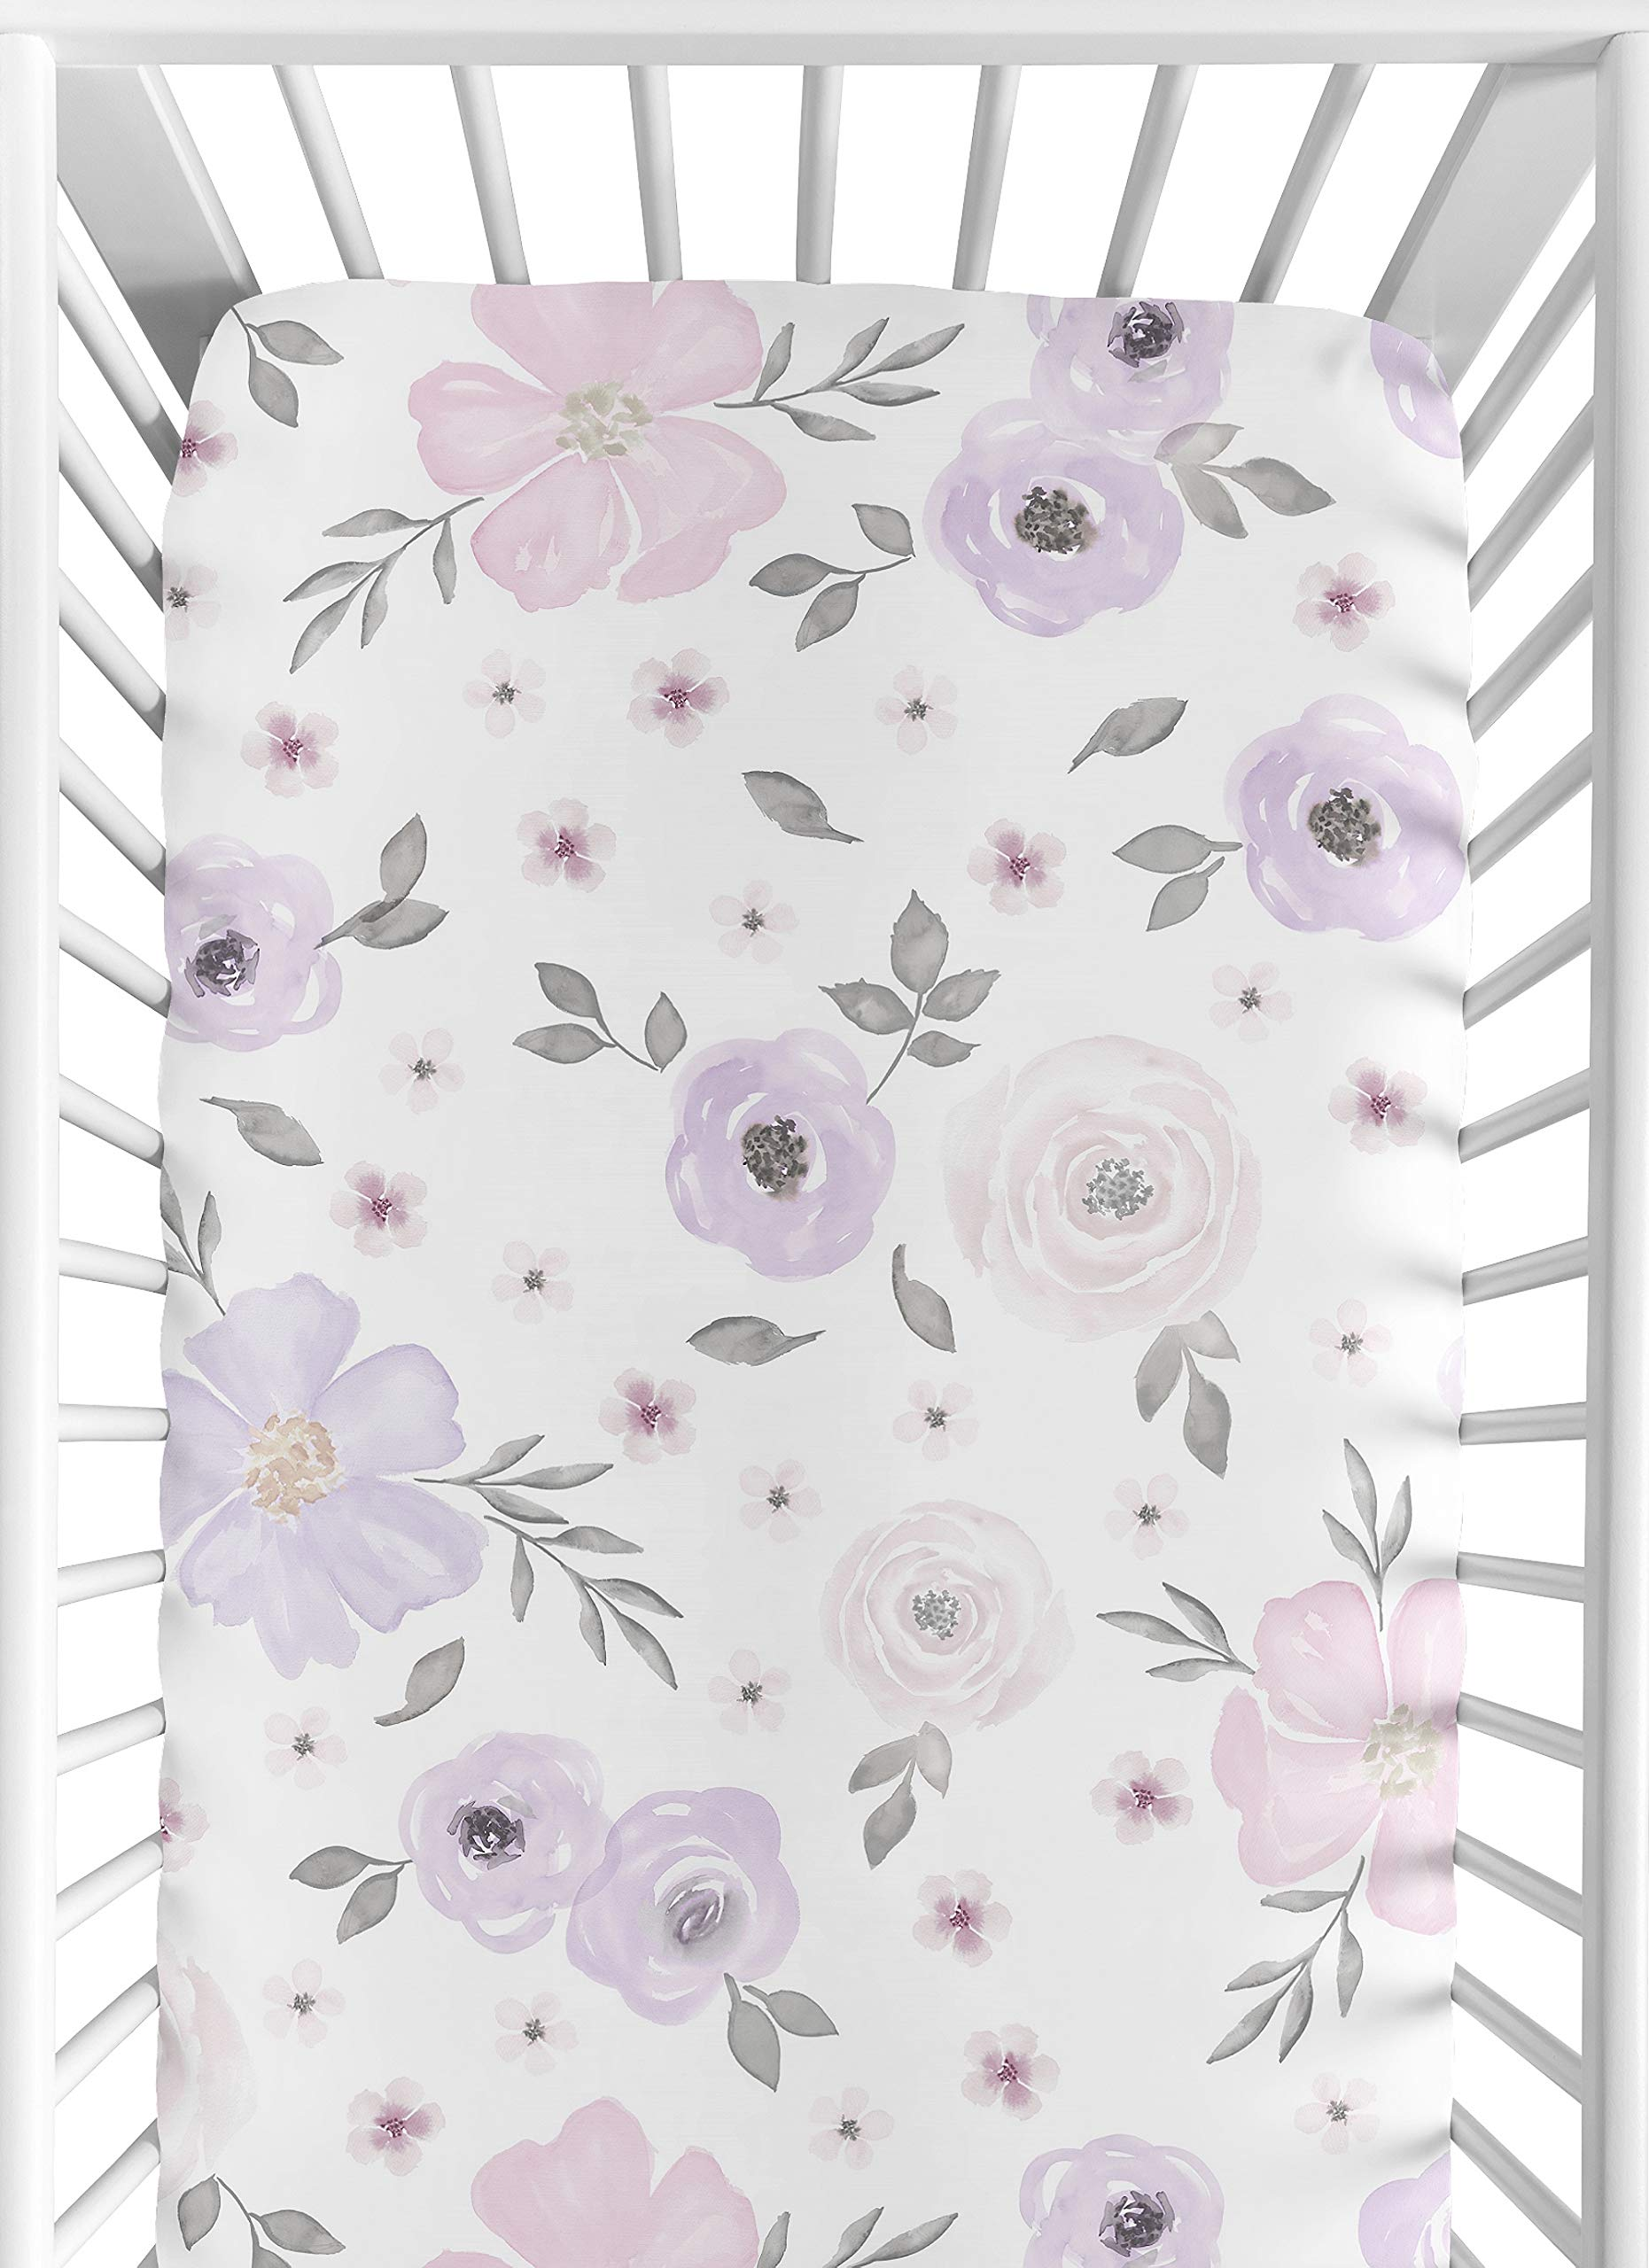 Sweet Jojo Designs Lavender Purple, Pink, Grey and White Baby or Toddler Fitted Crib Sheet for Watercolor Floral Collection - Rose Flower